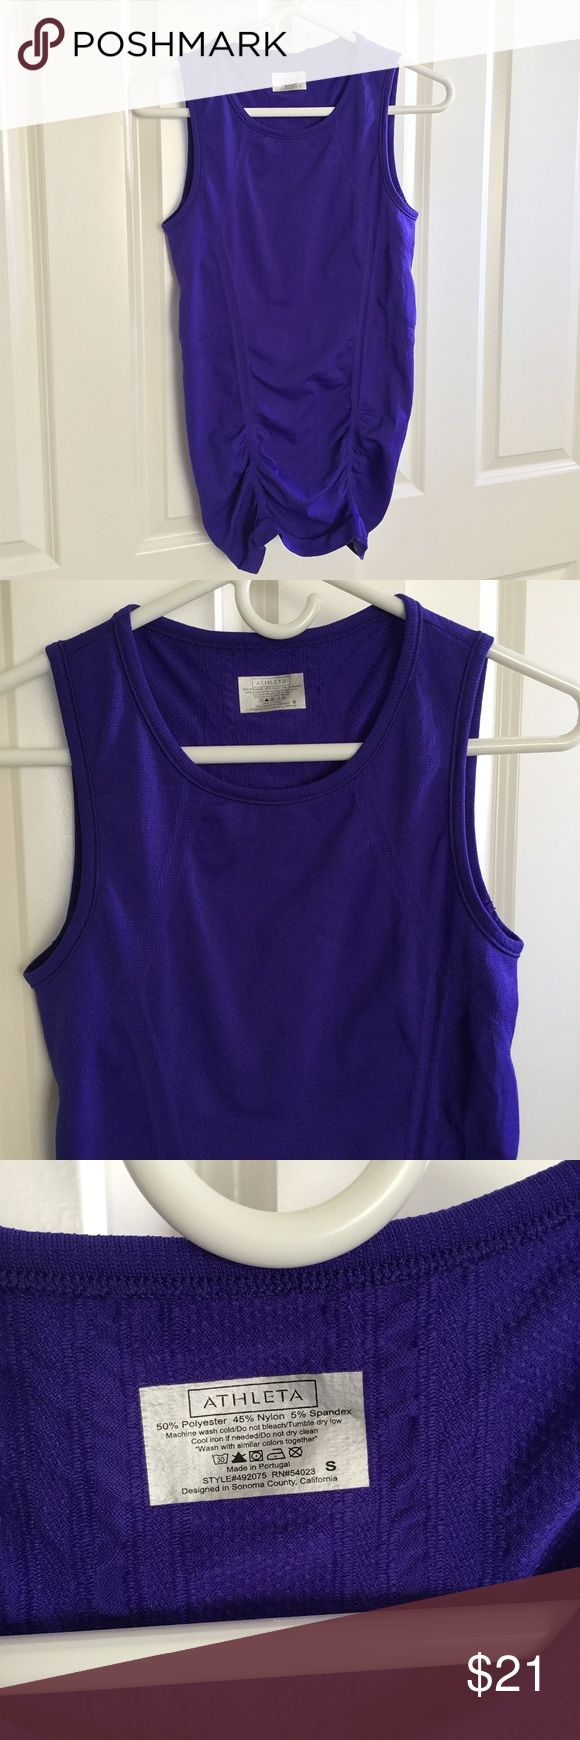 Athleta Athletic Top Tank Sleeveless Purple Small Athleta women's athletic top / tank.  Sleeveless.  Ruched in front and back.  Solid deep purple.  Size Small.  About 15 inches from armpit to armpit.  About 27 inches from shoulder to hem.  Very gently preowned.  Looks and feels new. Athleta Tops Tank Tops